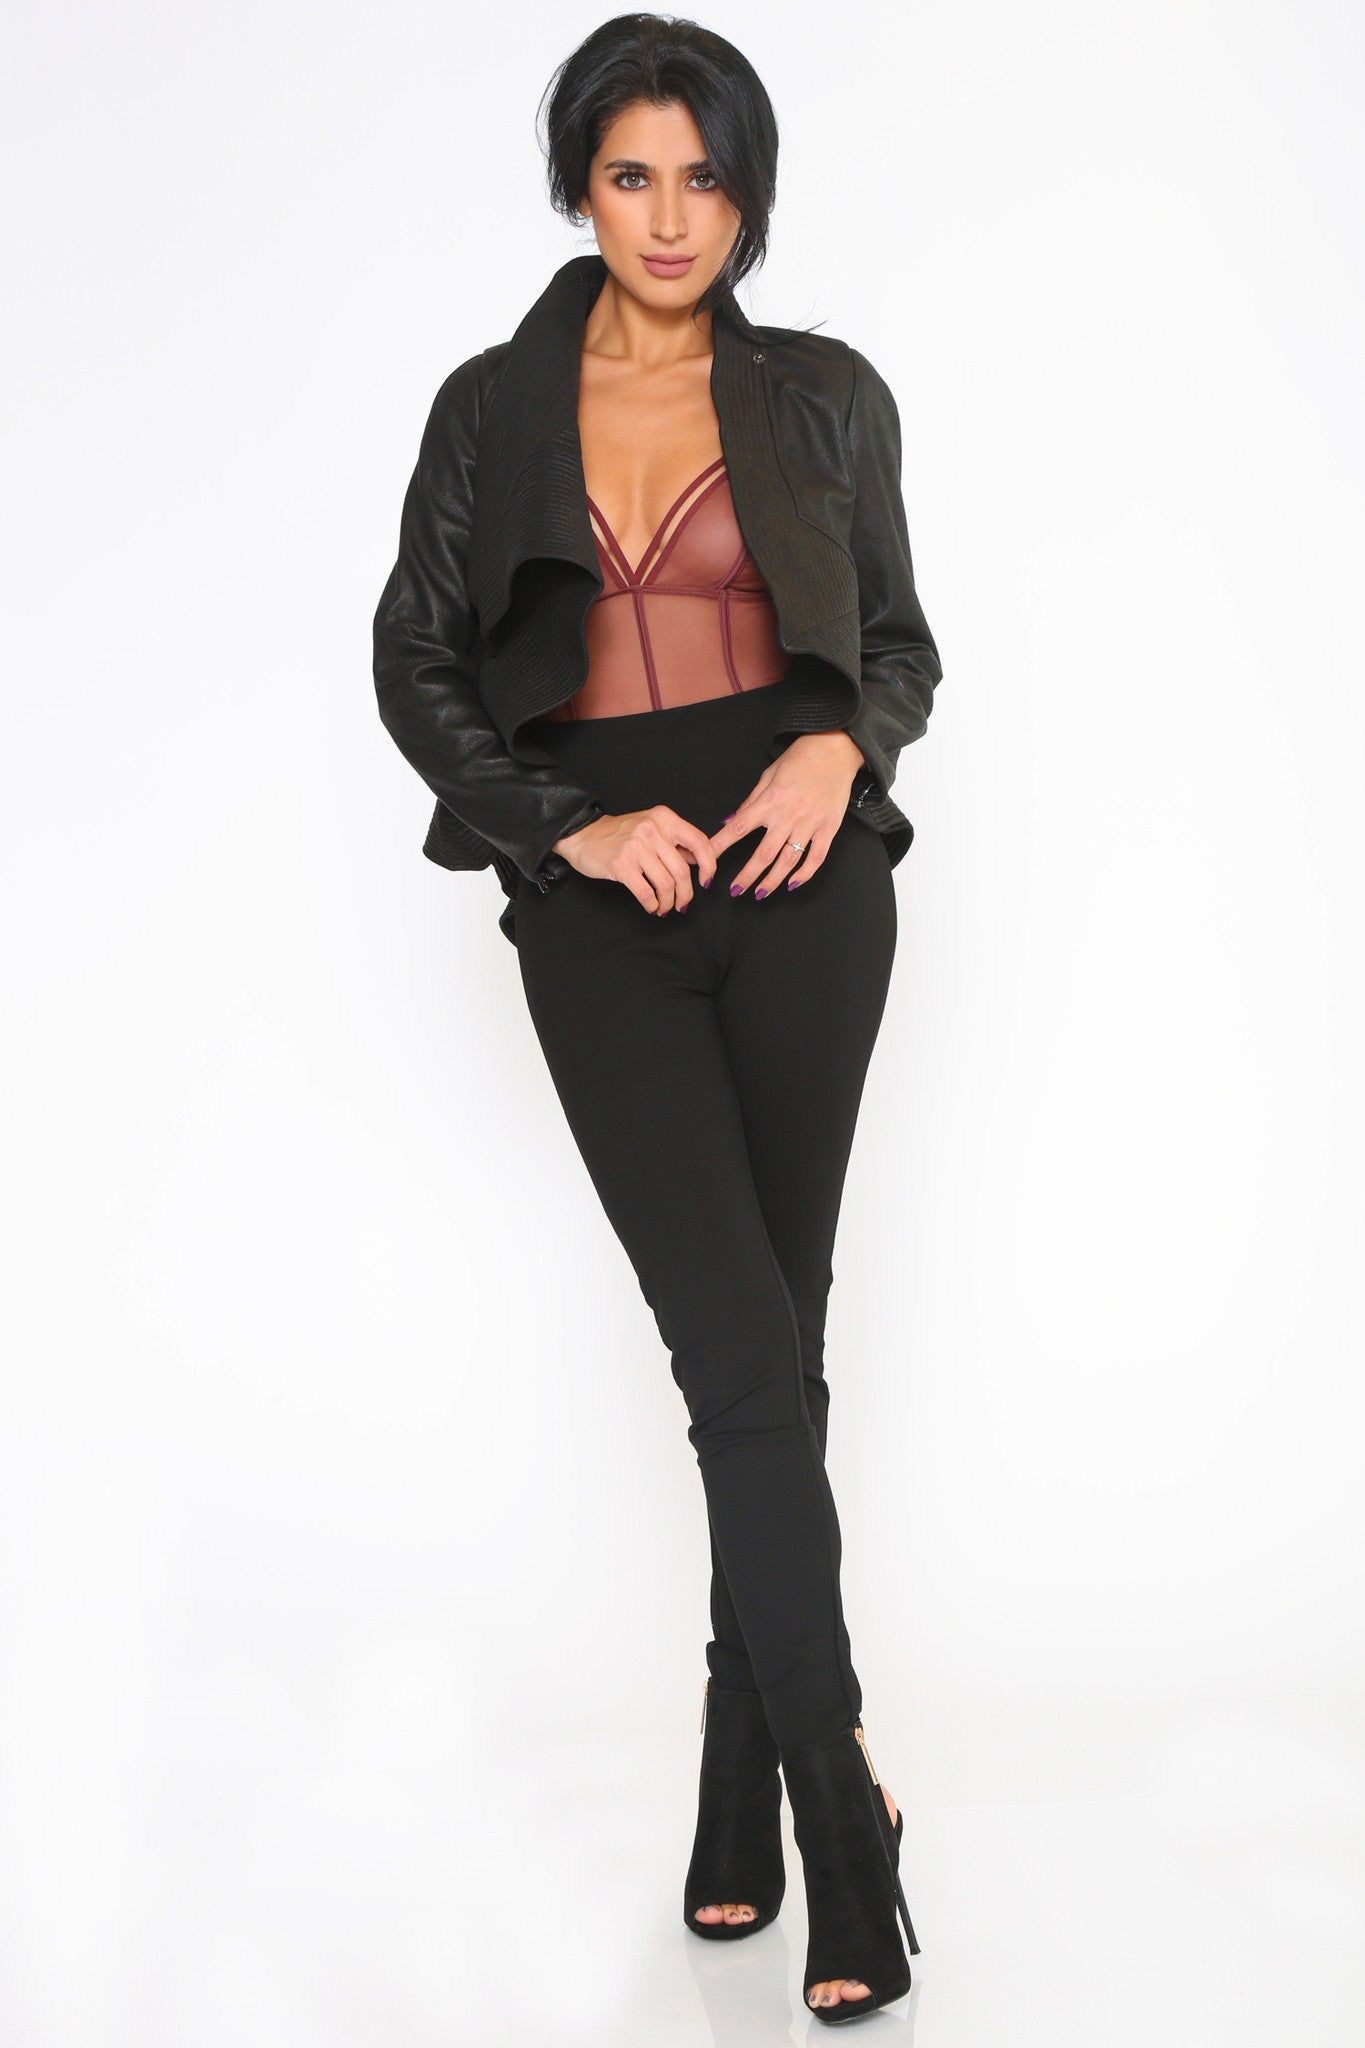 JEZEBEL JACKET - Glam Envy - 2